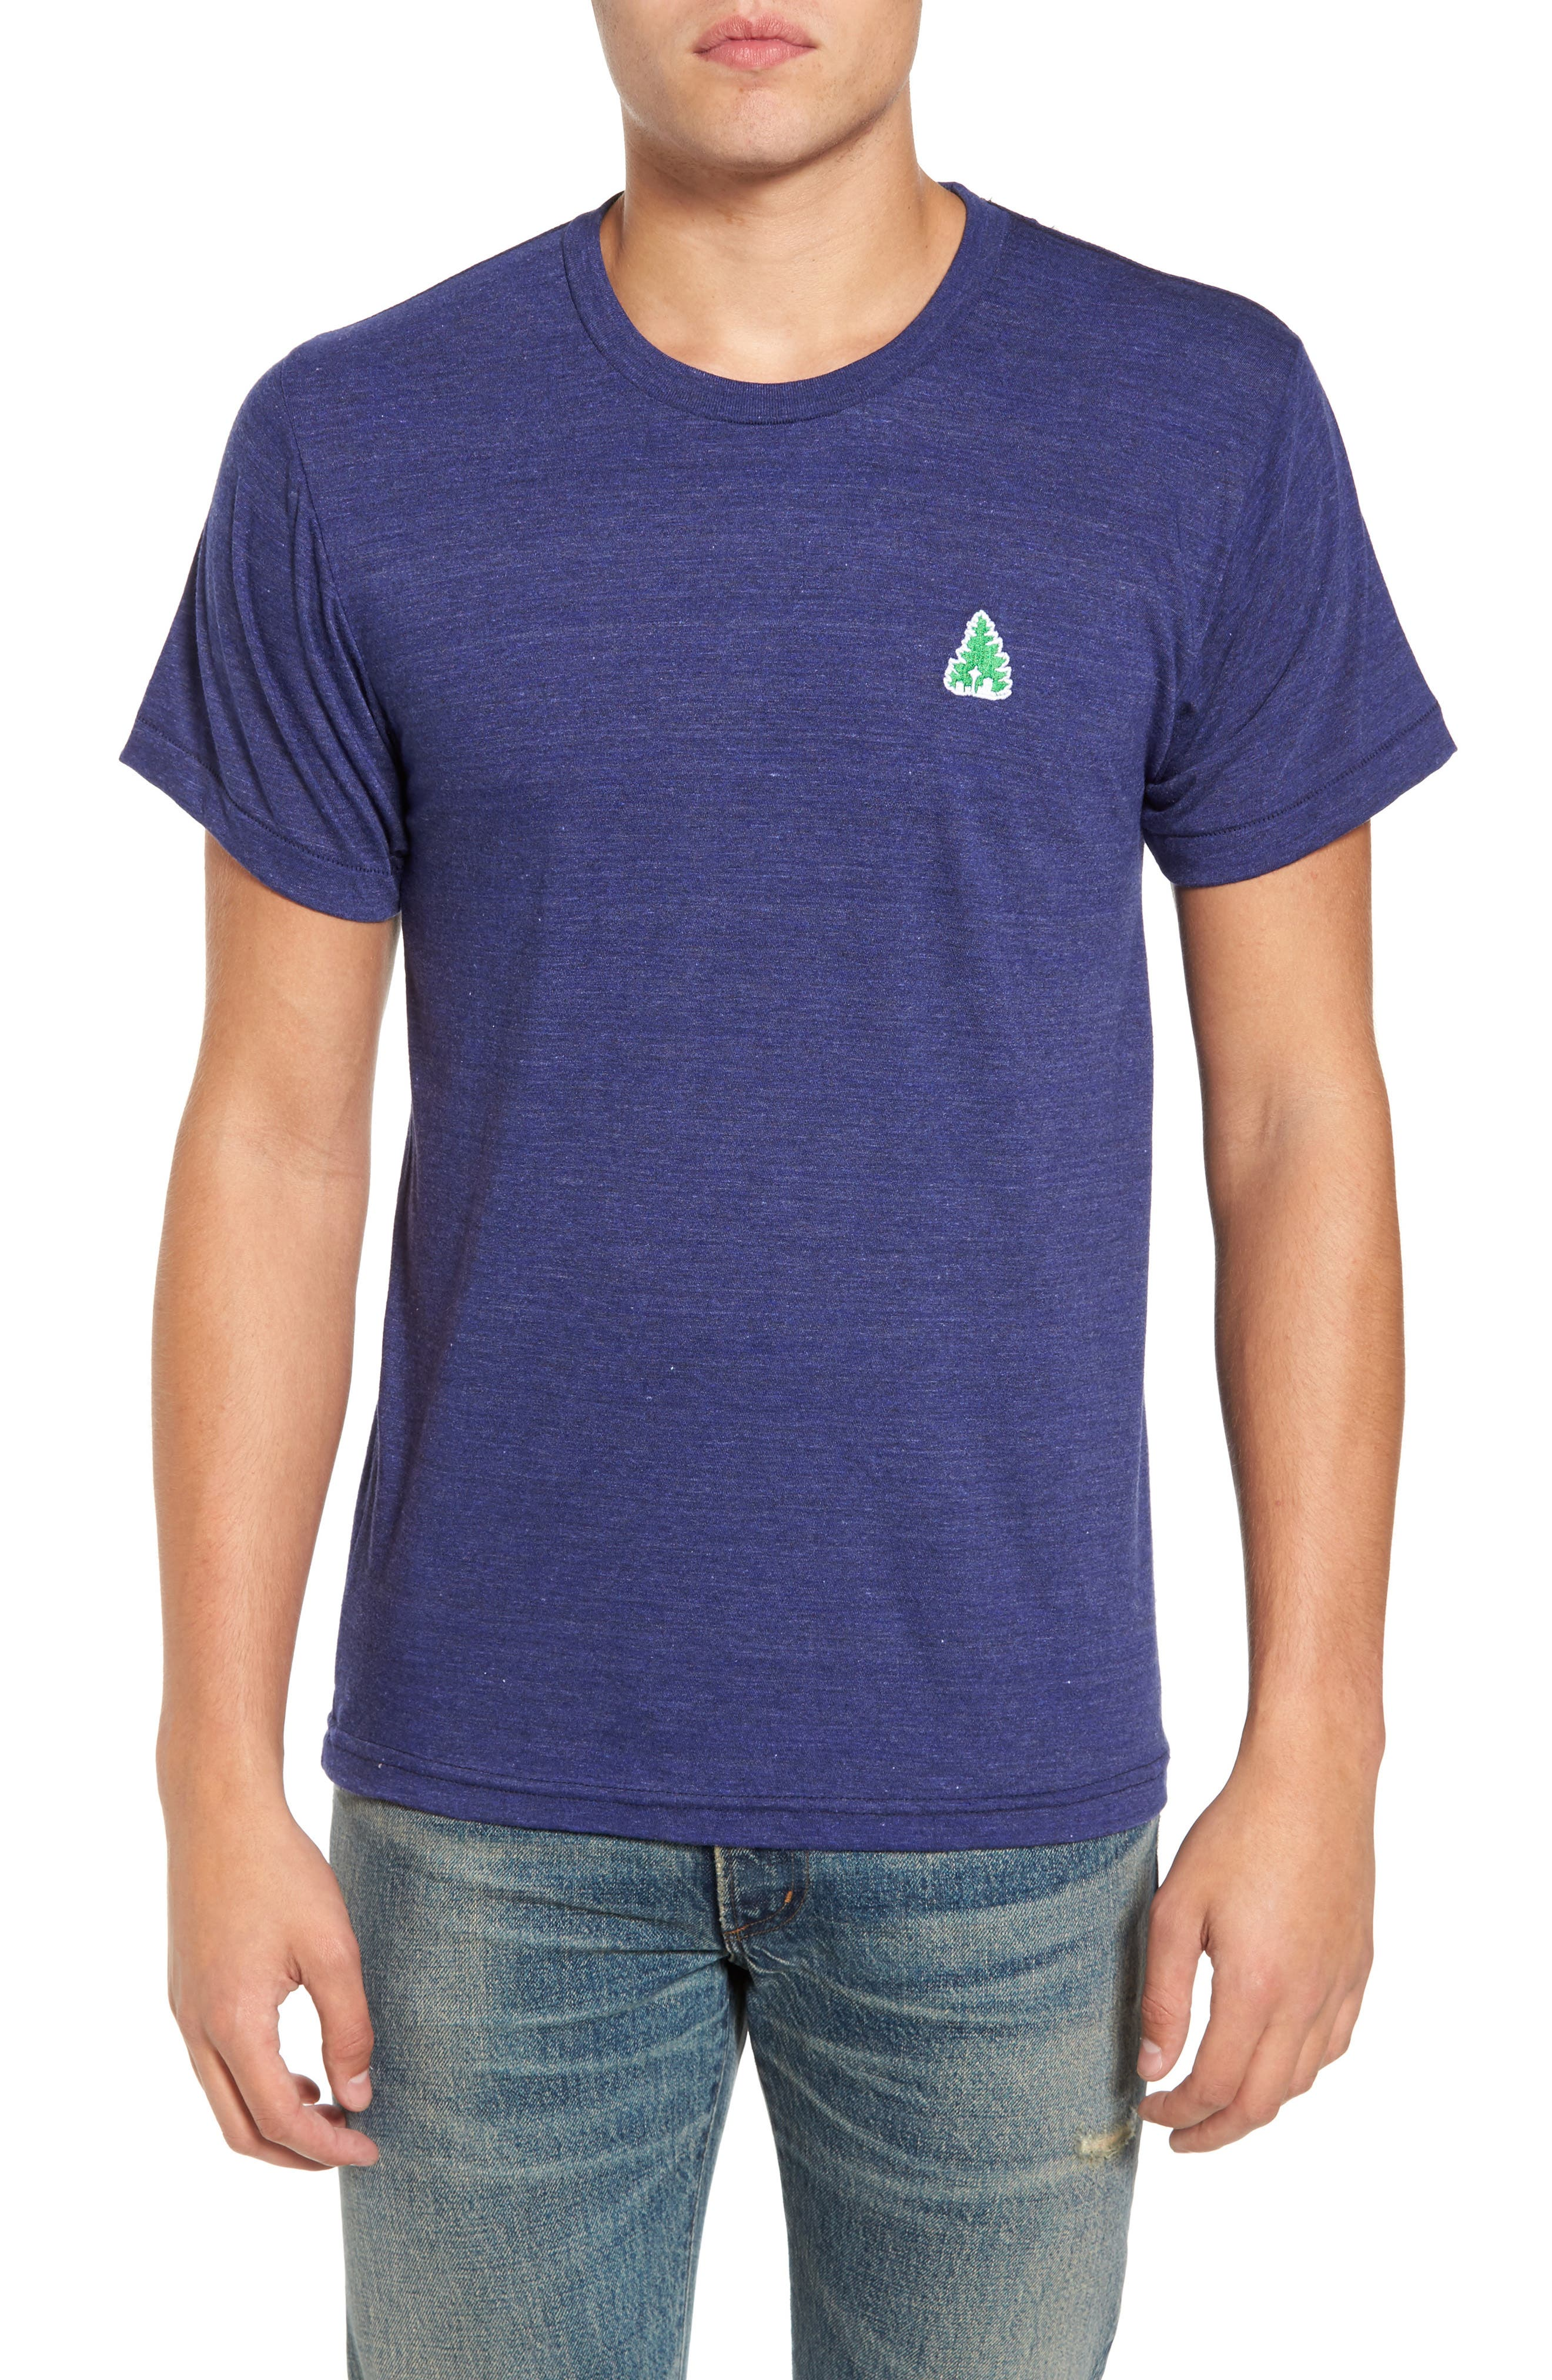 Johnny Tree Embroidered T-Shirt,                         Main,                         color, 408